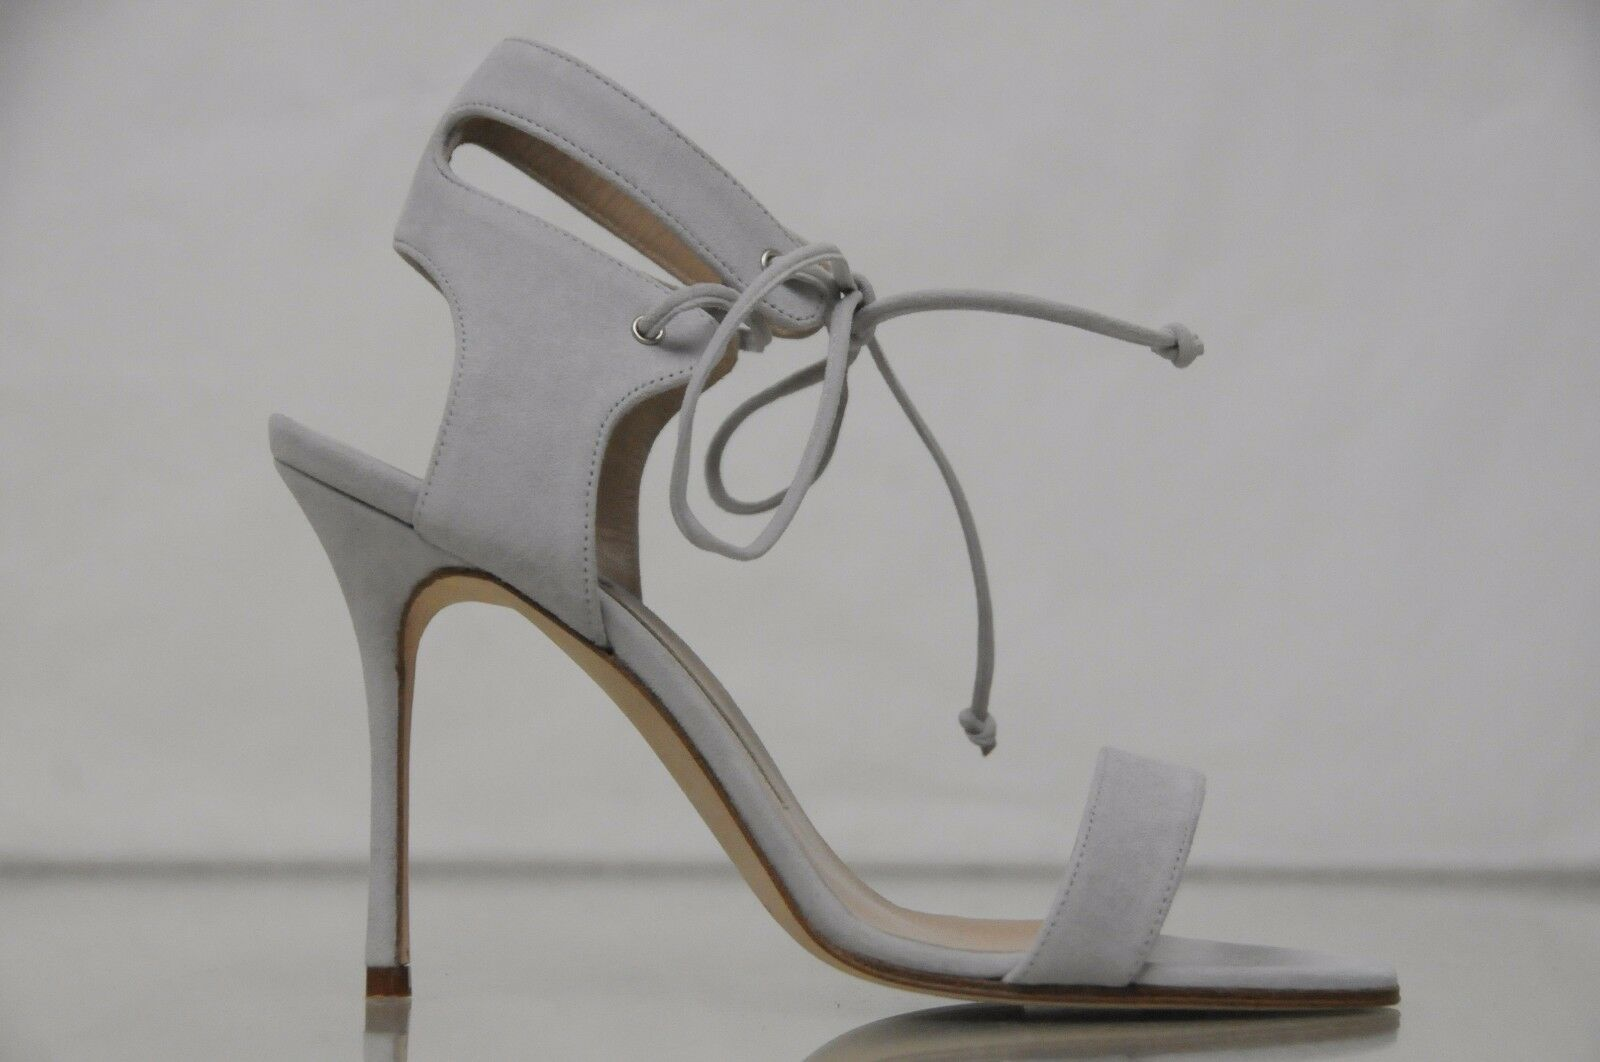 885 New Manolo Blahnik LARAMOD Lace-Up Strappy lt Grey Suede Sandals shoes 40.5